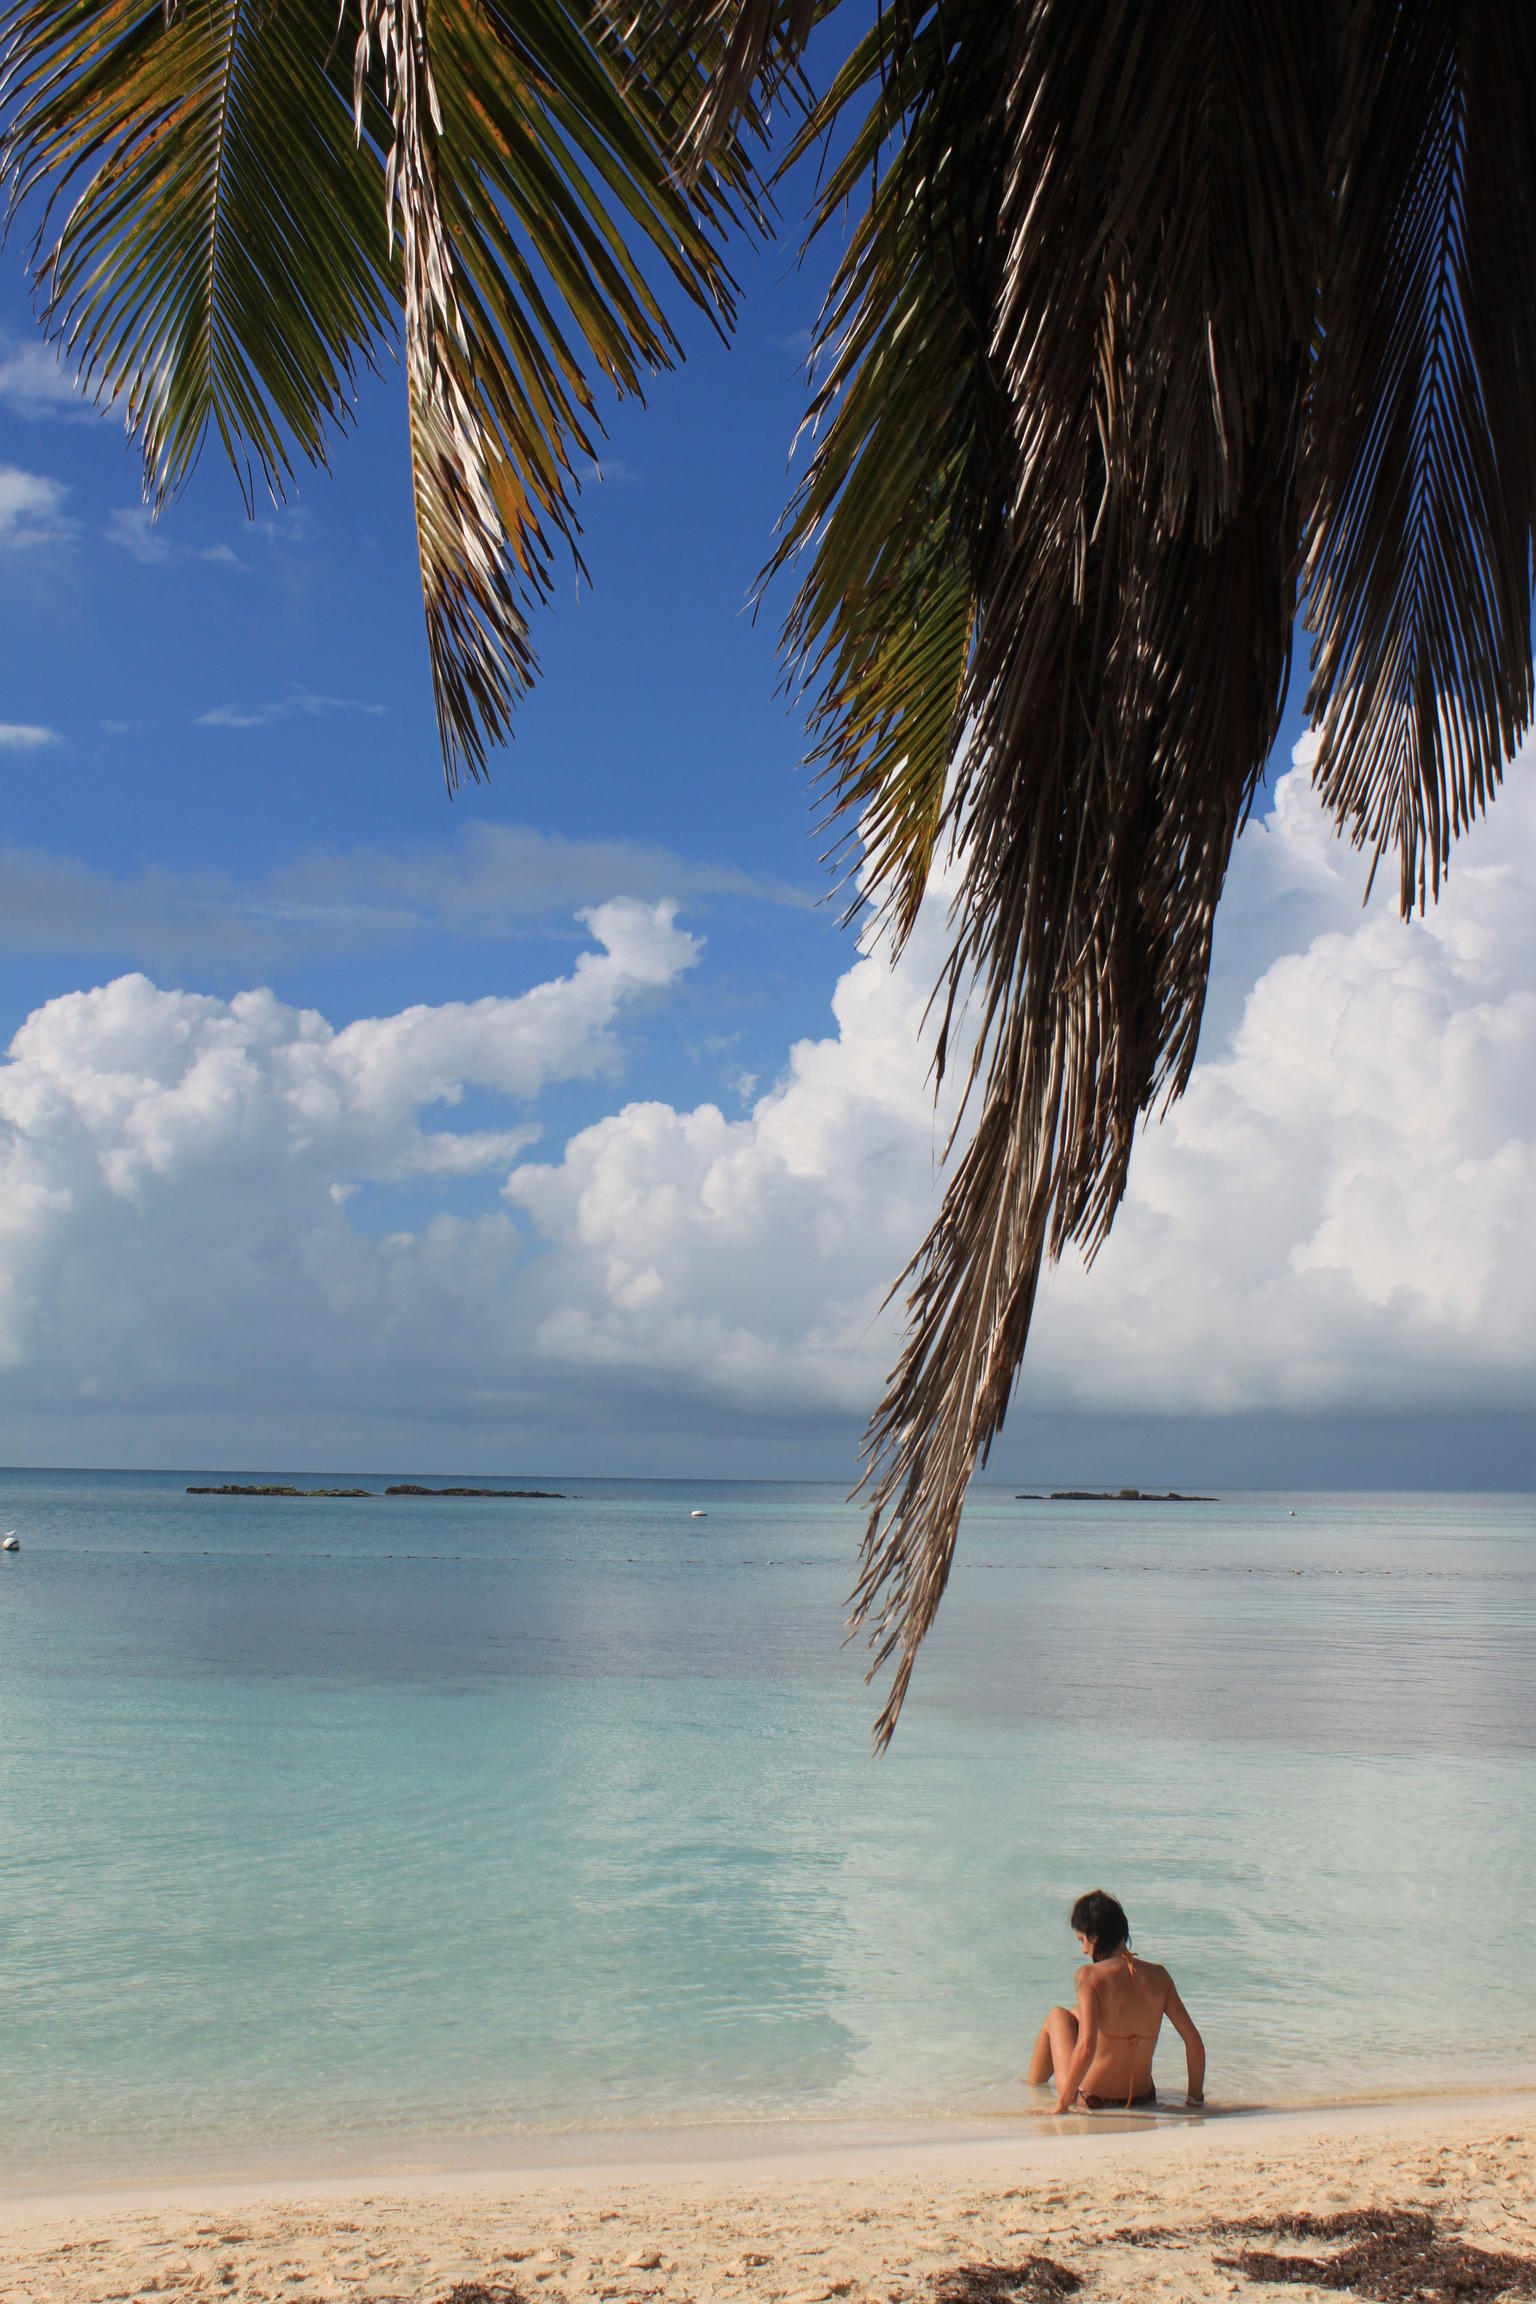 Isla Contoy Day Trip: Snorkeling at Ixlache Reef and Eco-Paradise Tour